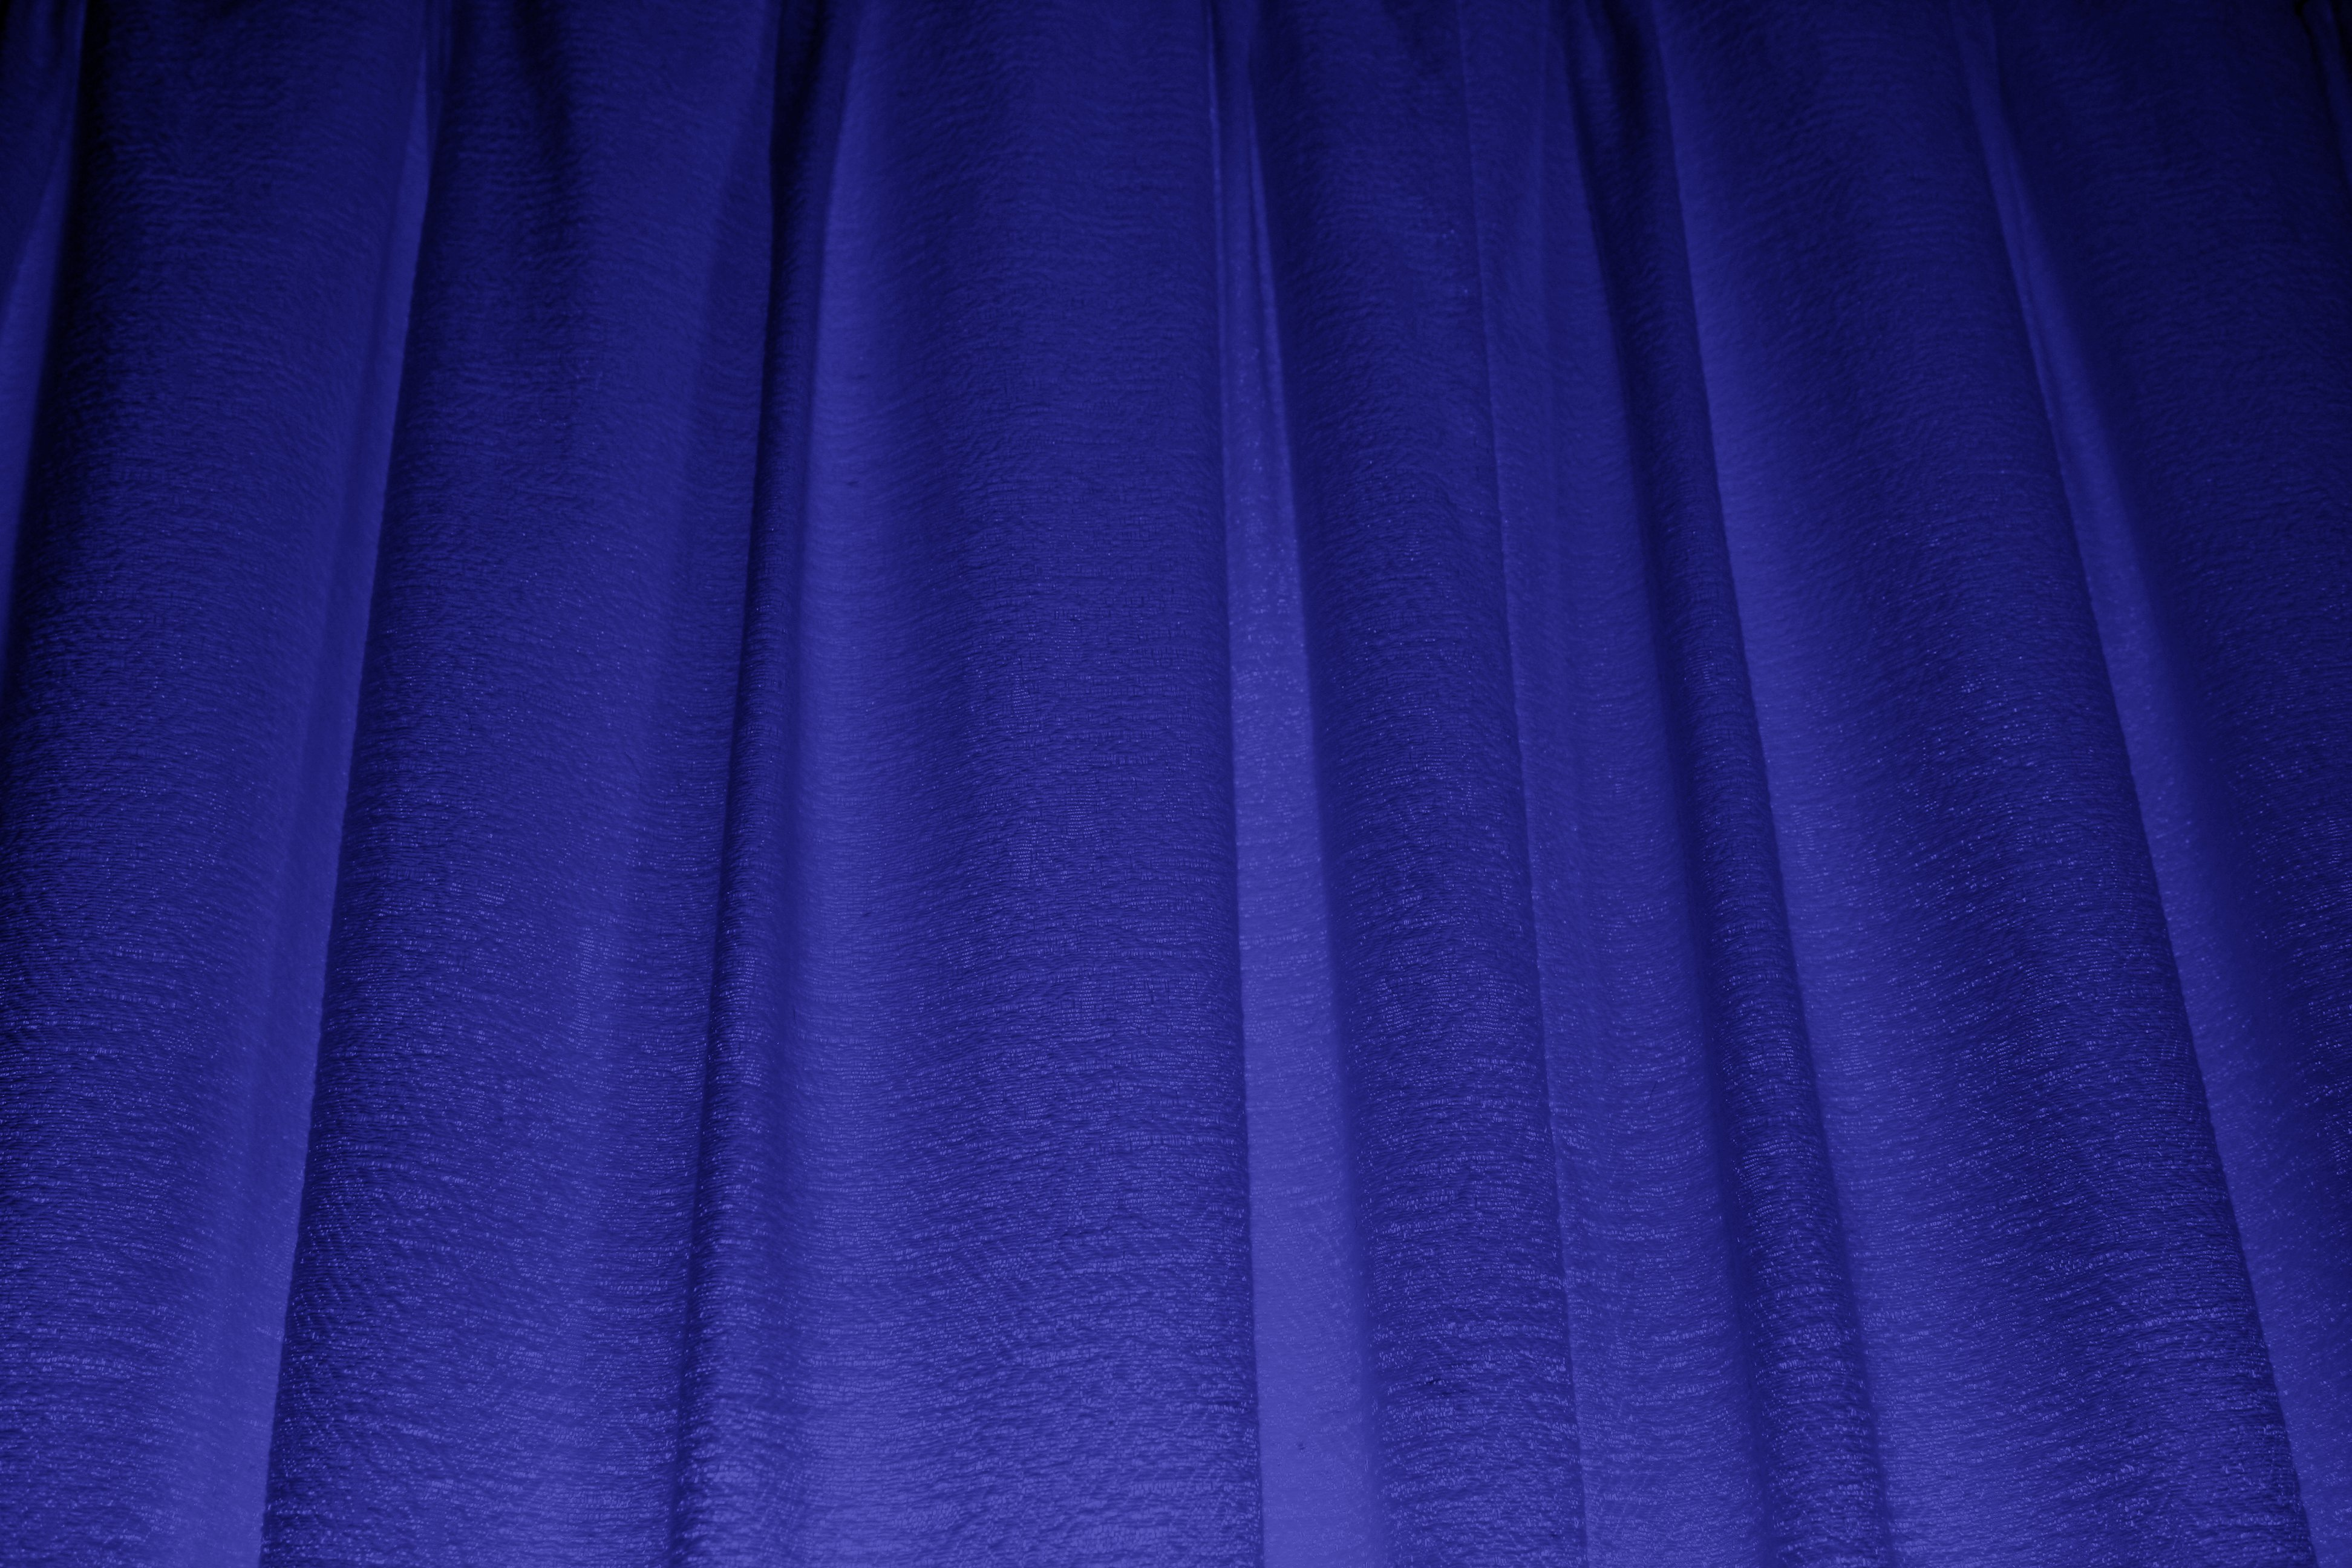 Blue curtain backdrop - Click Here To Download Full Resolution Image Curtains Texture